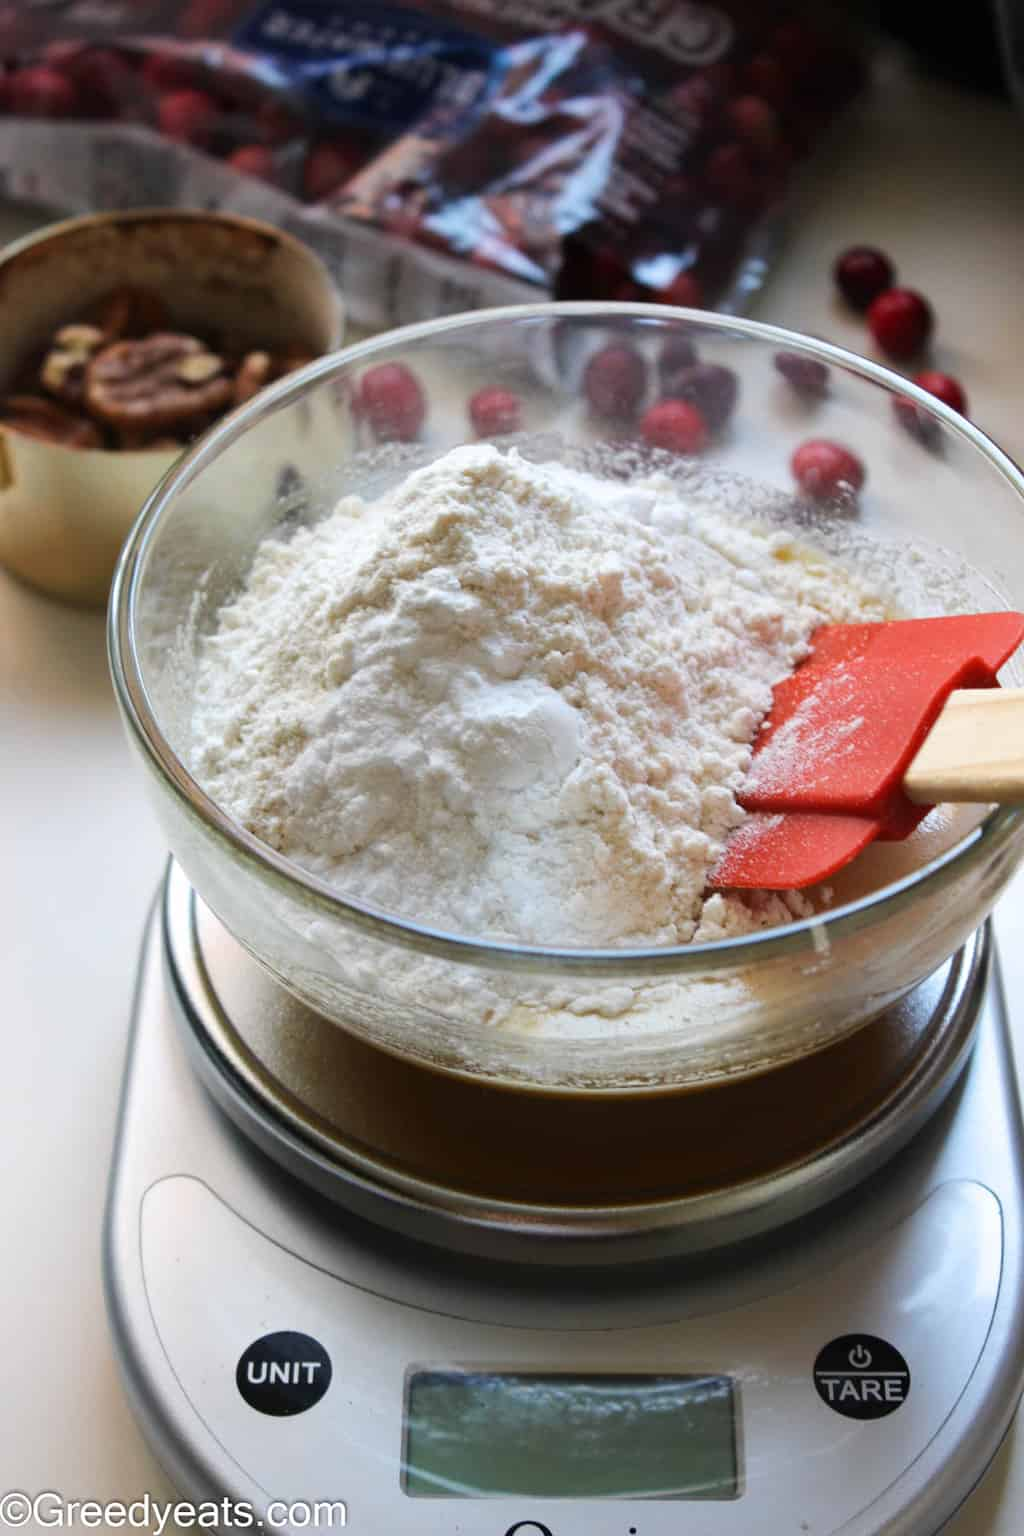 Dry ingredients like flour, leavener and salt for coffee cake in a glass bowl